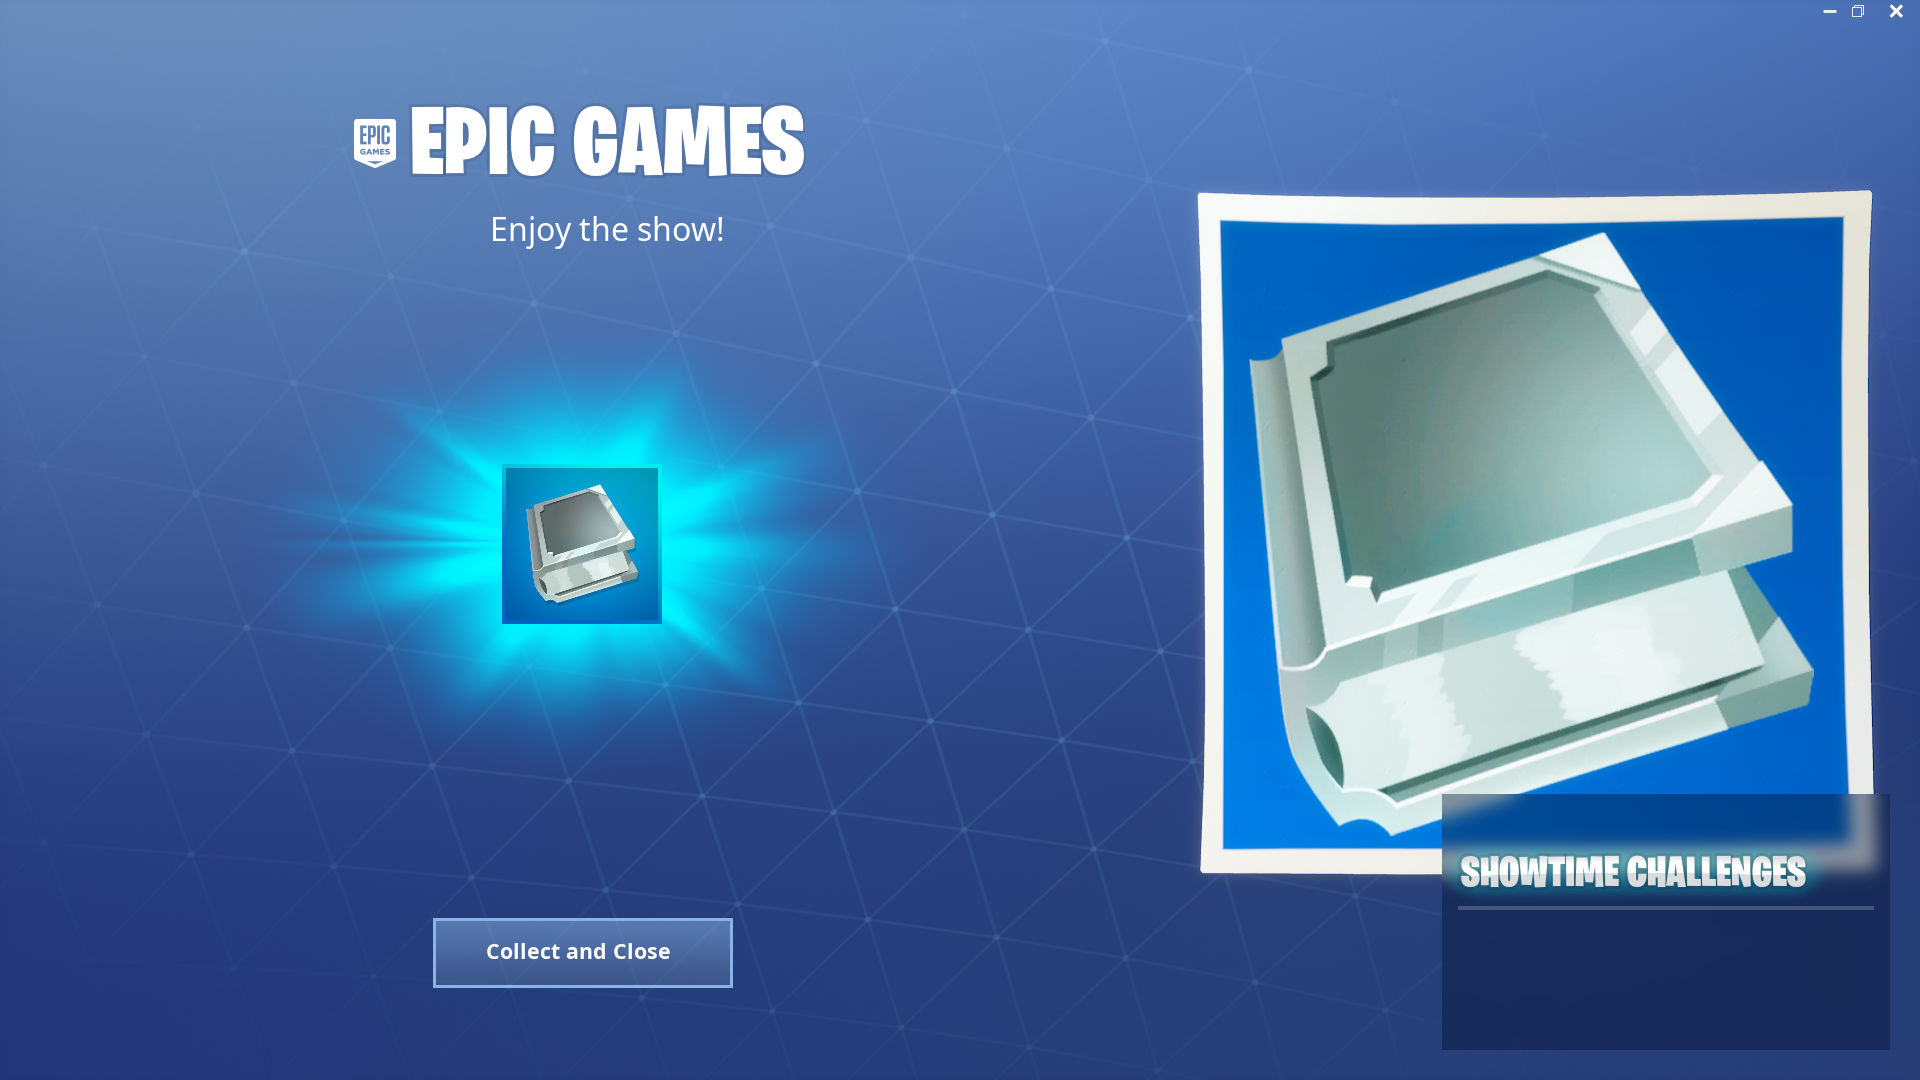 What Is Marshmallows Name On Fortnite Here Are All The Challenges And Rewards For Marshmello S Showtime Fortnite Event Dot Esports